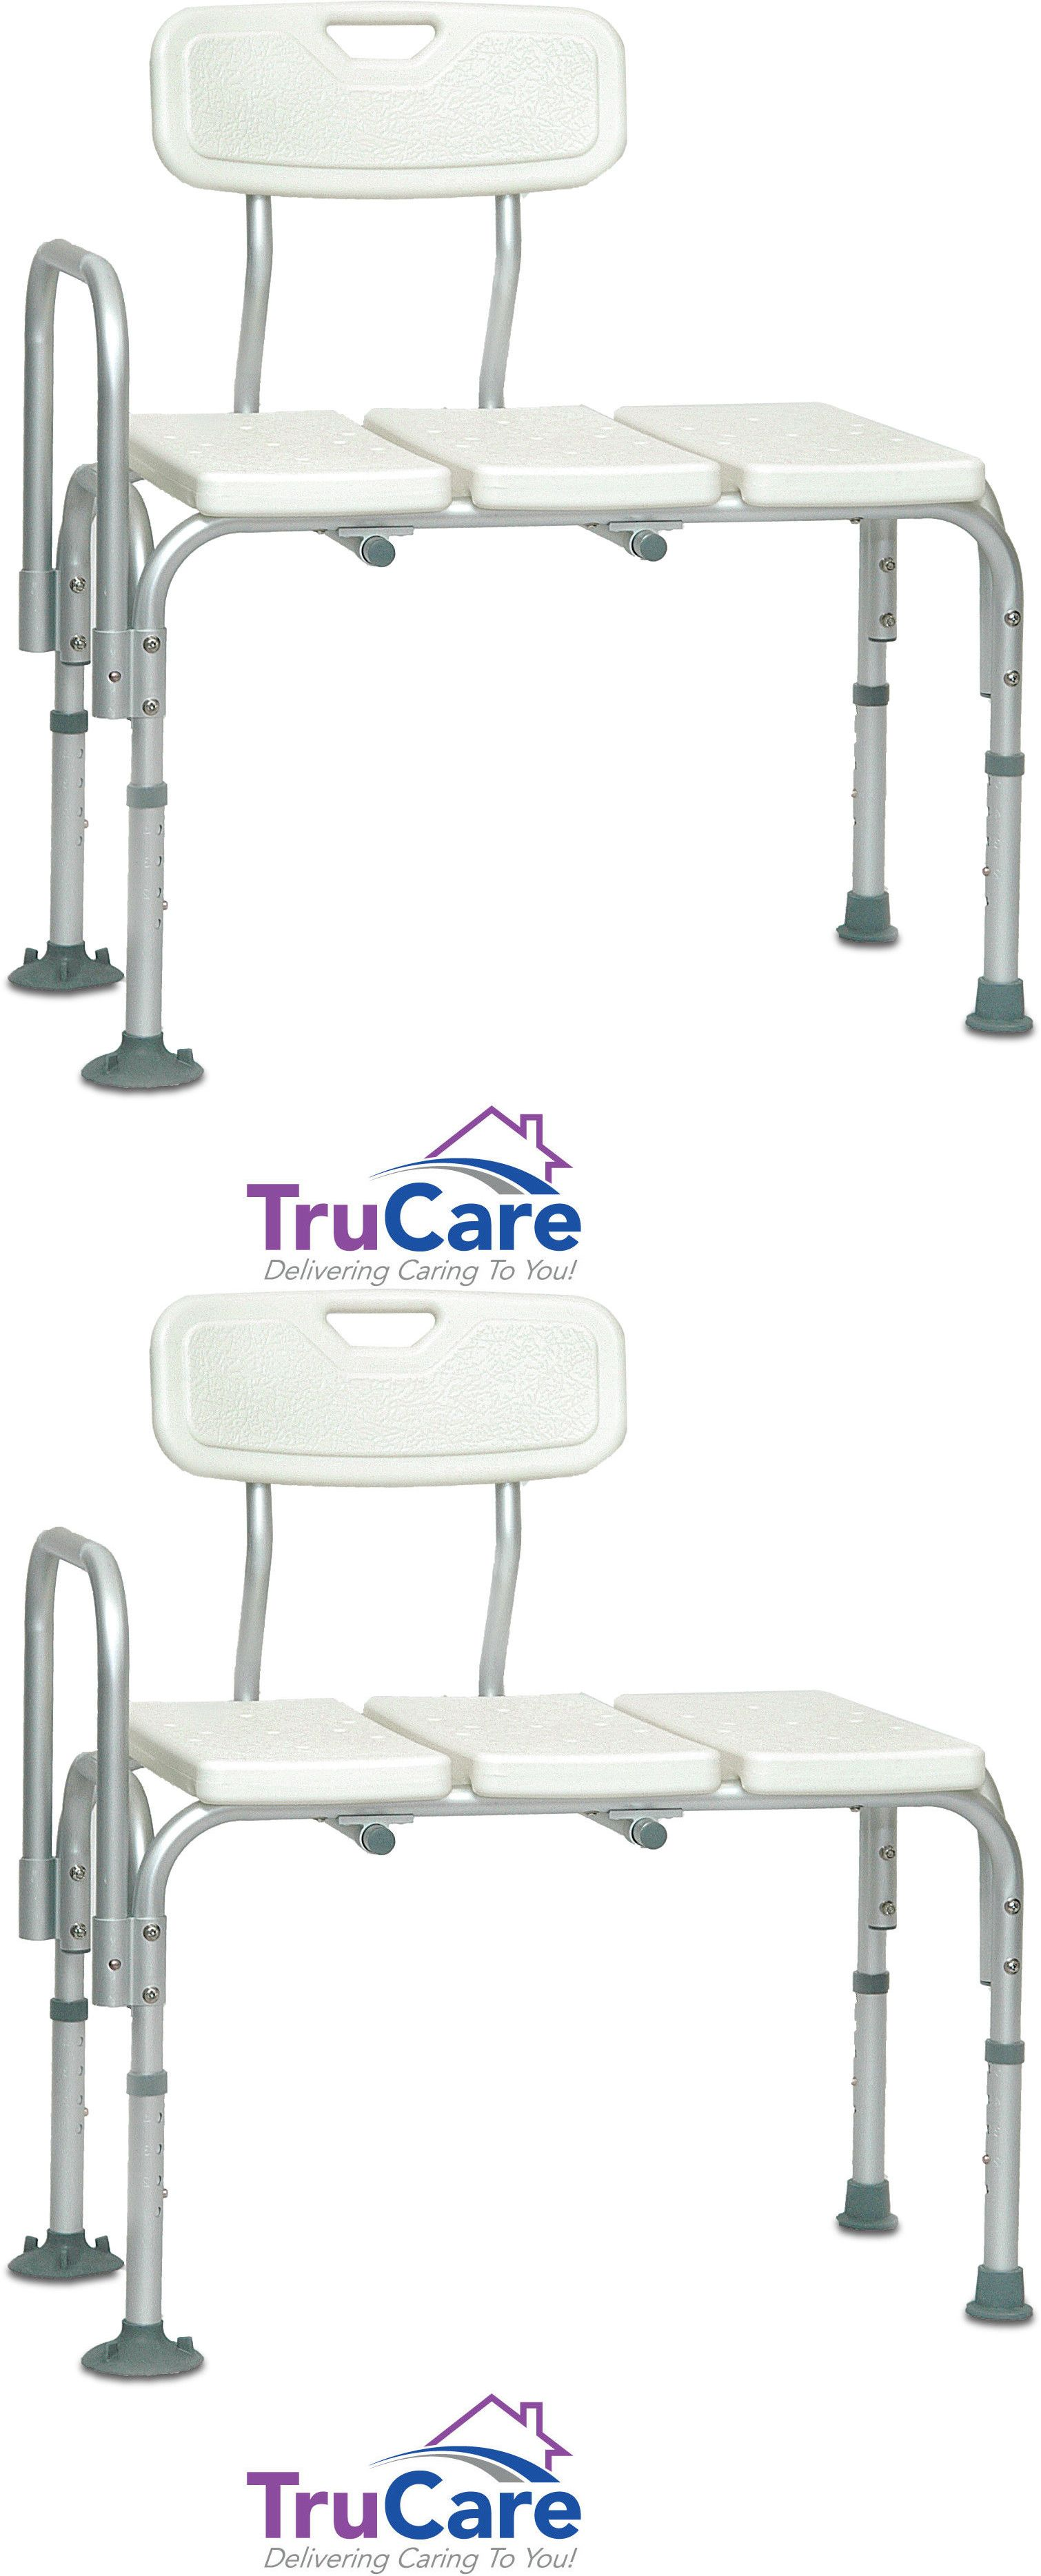 difference between shower chair and tub transfer bench sash buckles new height adjustable bath medical seats 129588 buy it now only 43 99 on ebay